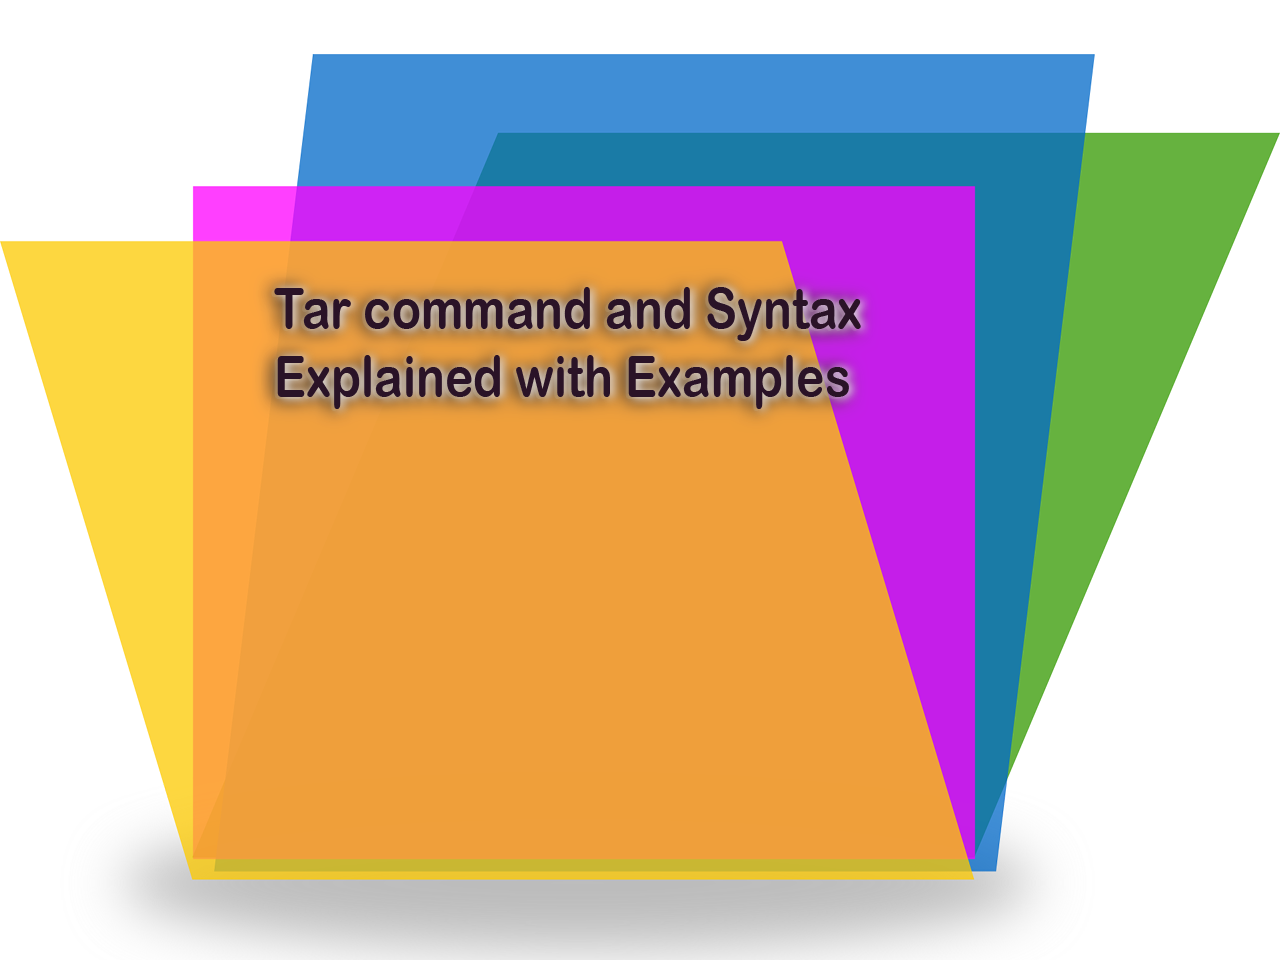 Tar command and Syntax Explained with Examples